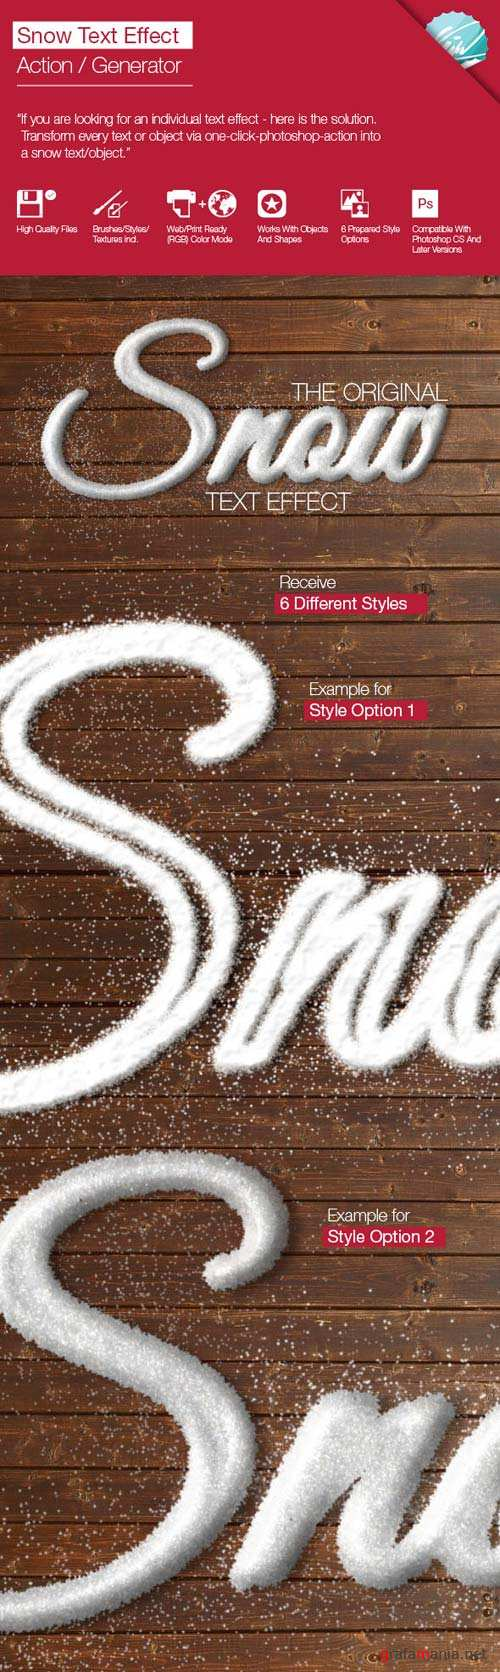 GraphicRiver Snow Text Effect / Generator